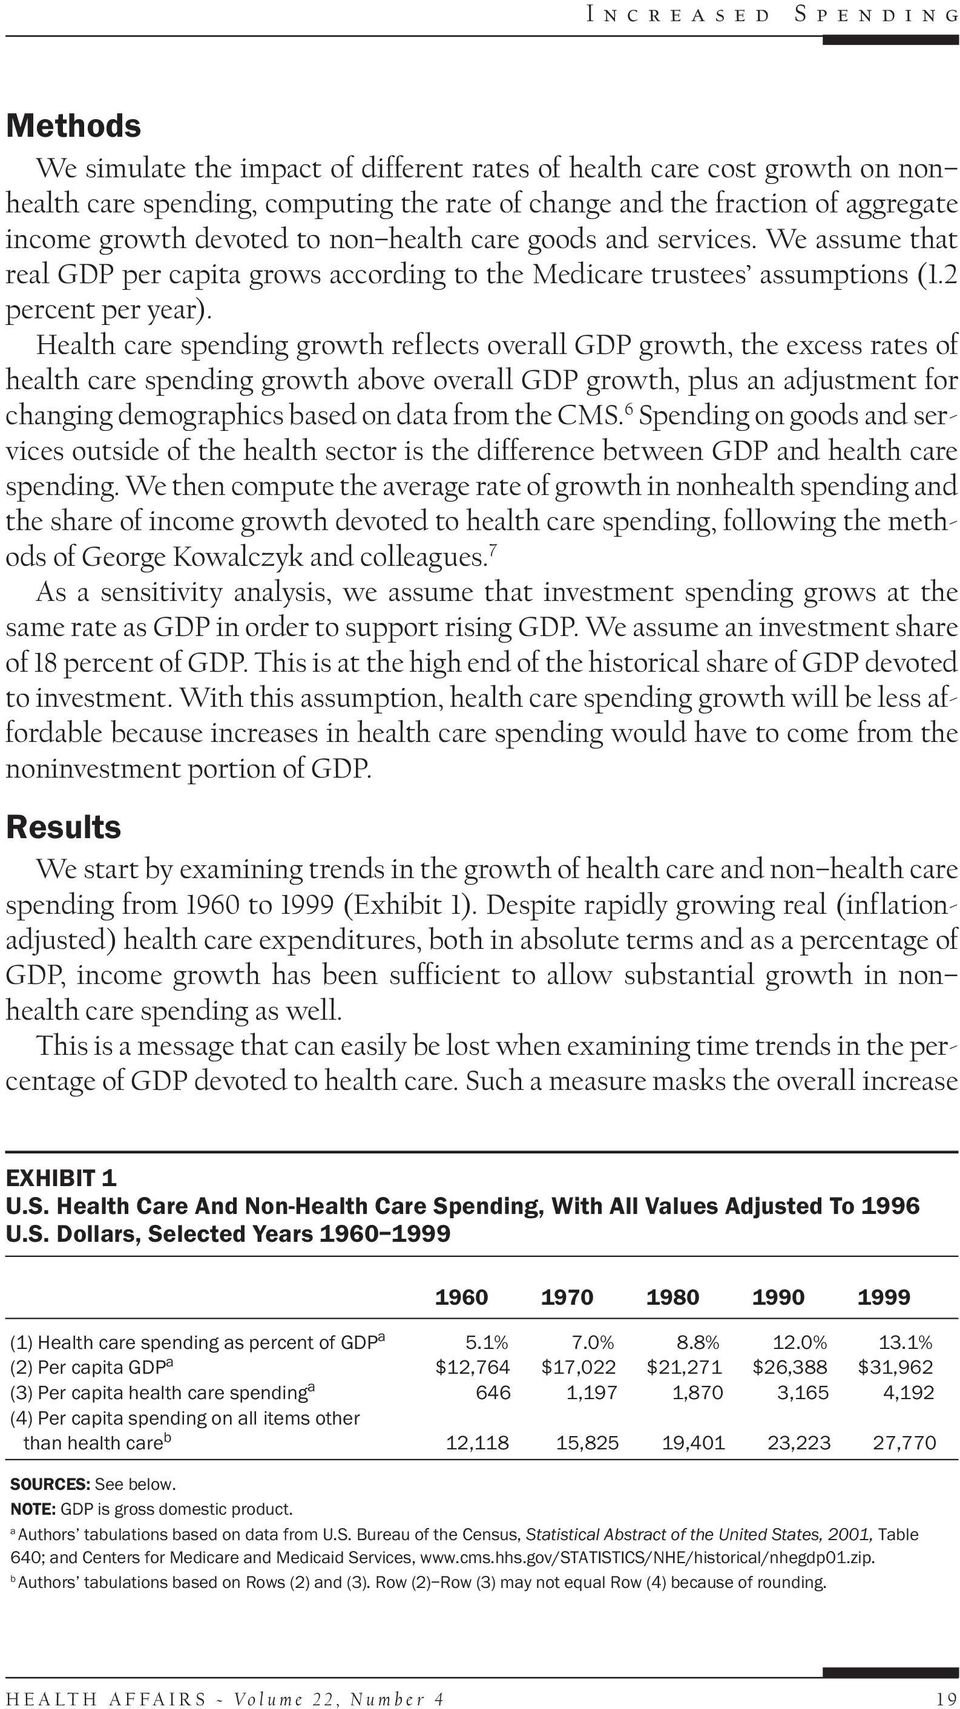 Health care spending growth reflects overall GDP growth, the excess rates of health care spending growth above overall GDP growth, plus an adjustment for changing demographics based on data from the